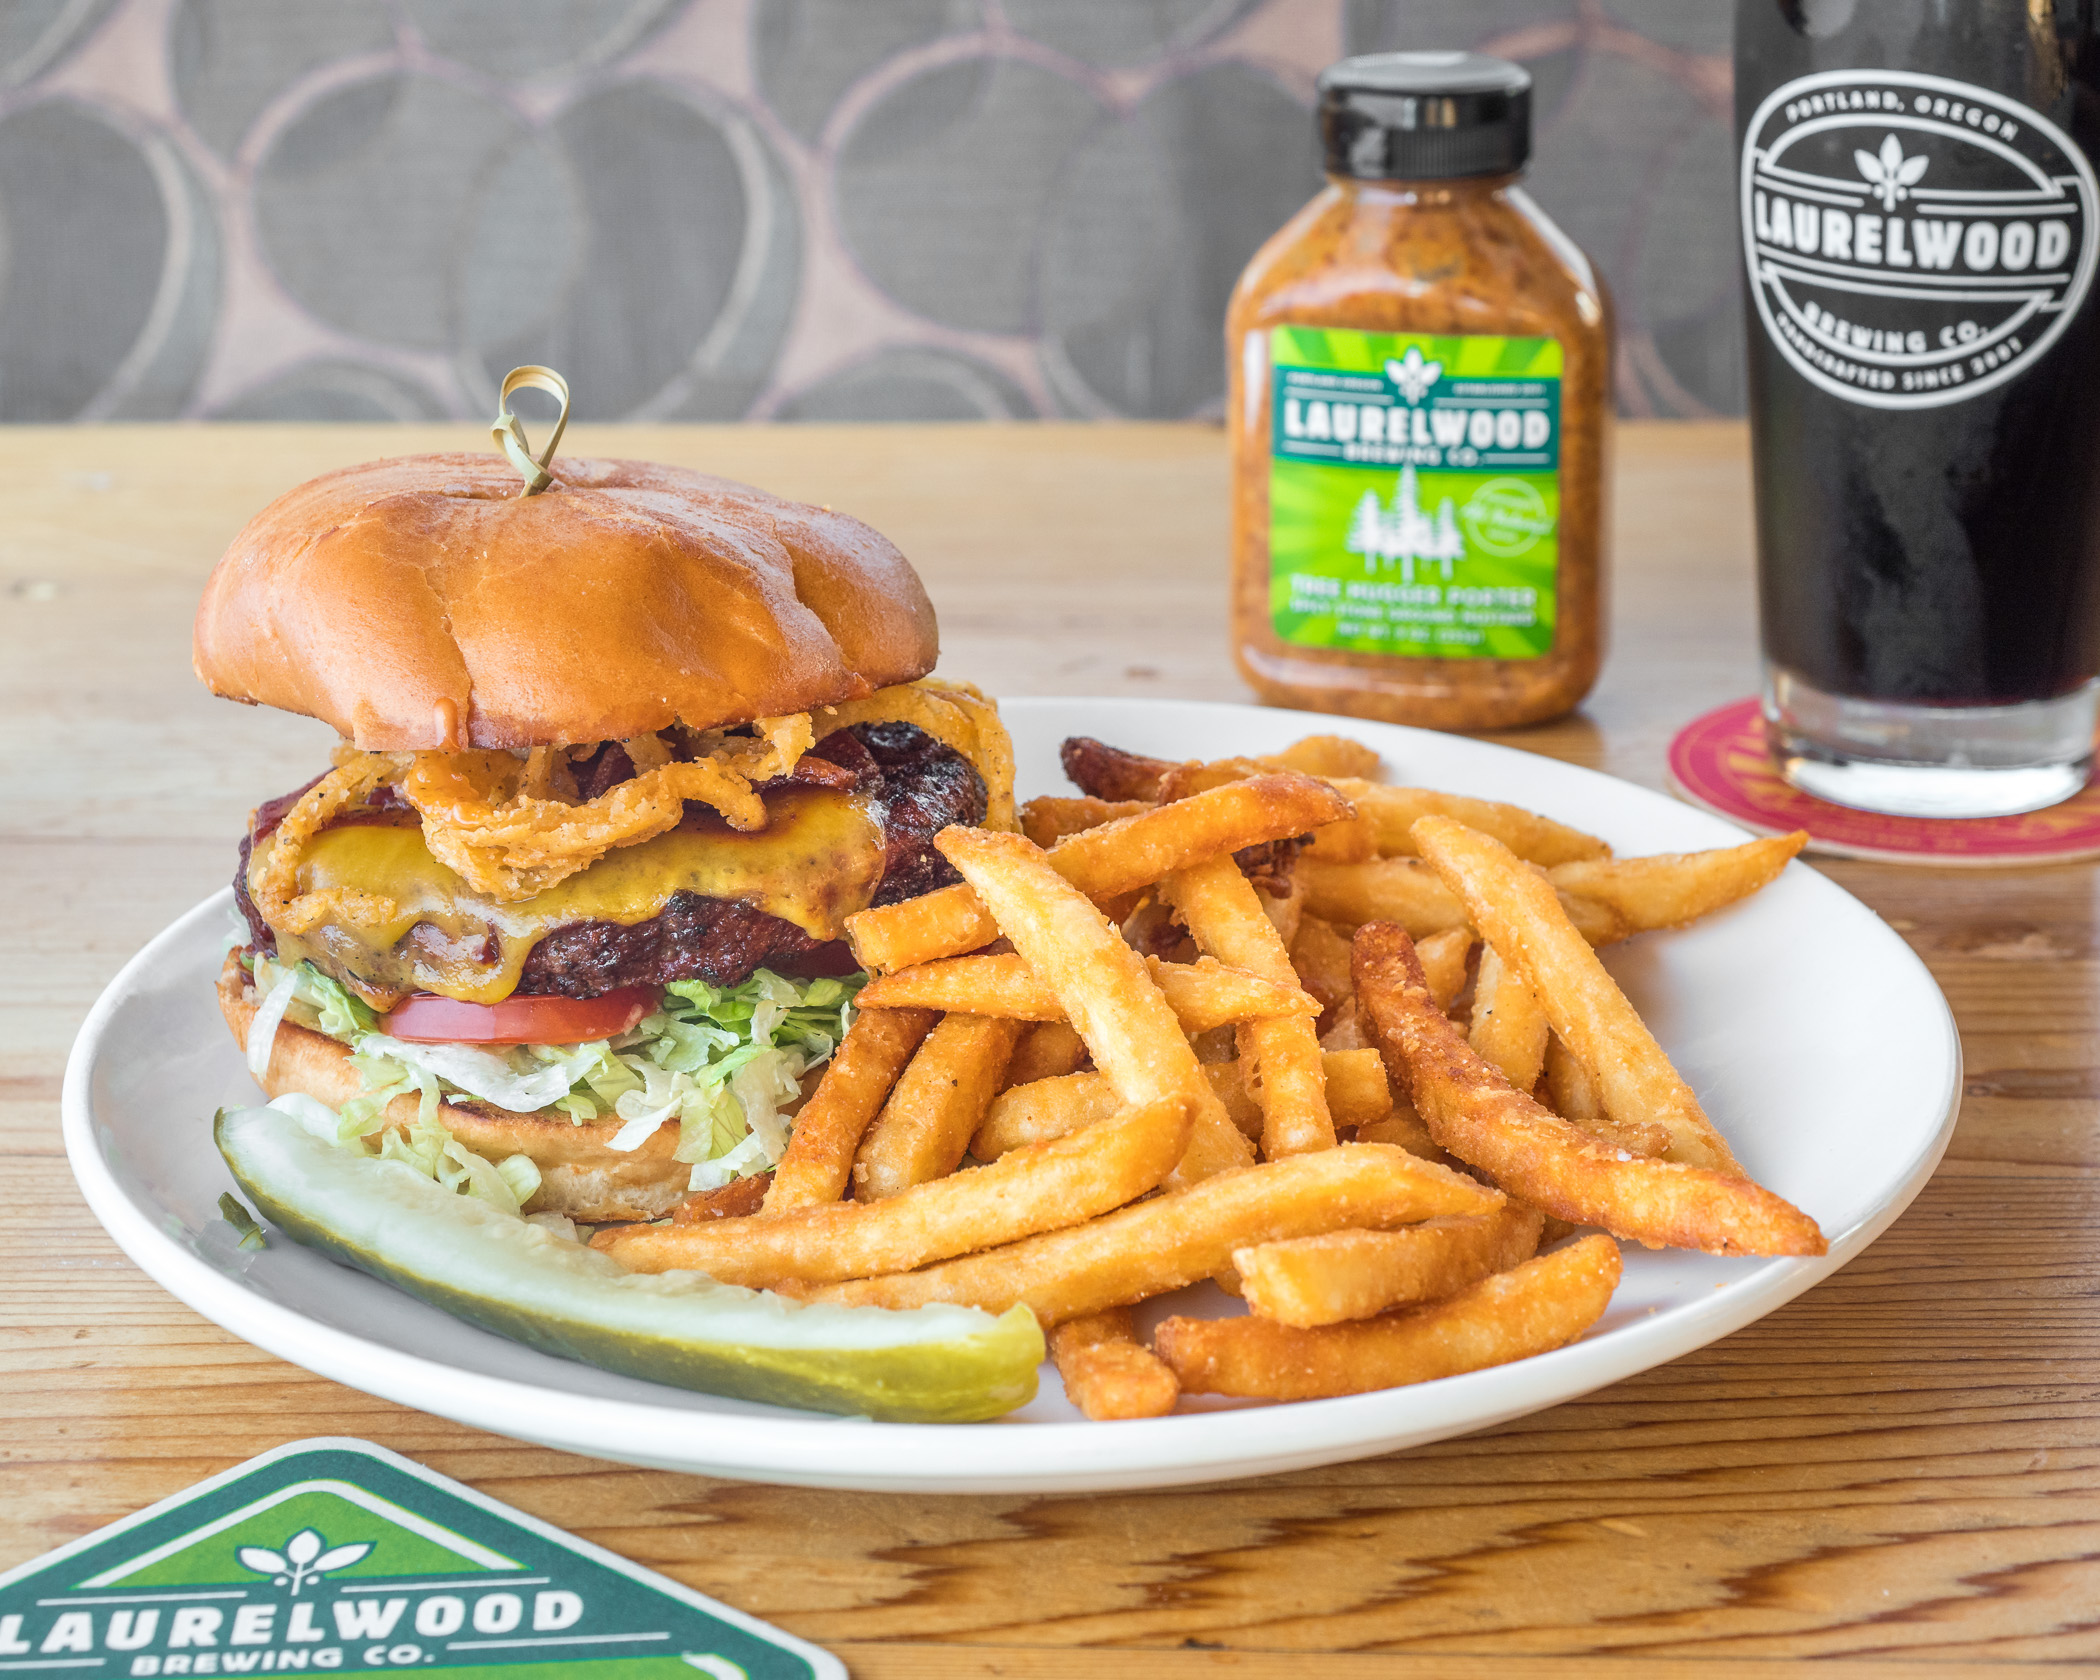 pub laurelwood brewery pdx picture portland pacific northwest food photography photographer.jpg